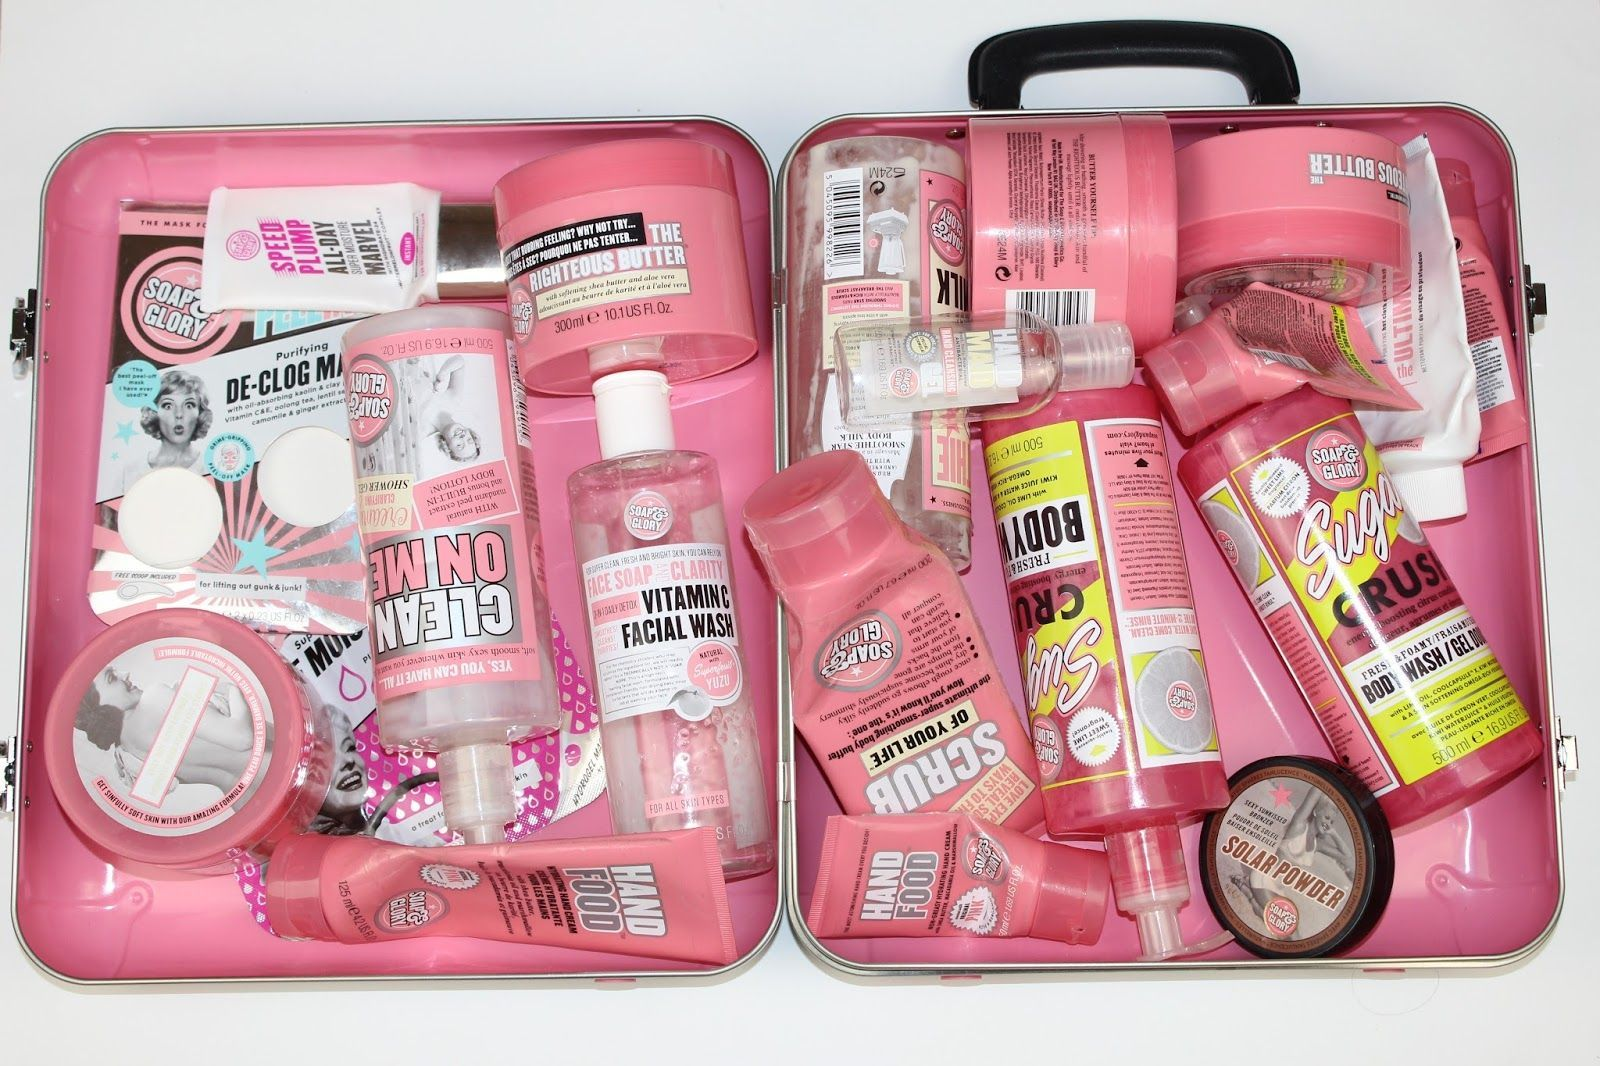 Best Soap and Glory Products Hot or Not!?